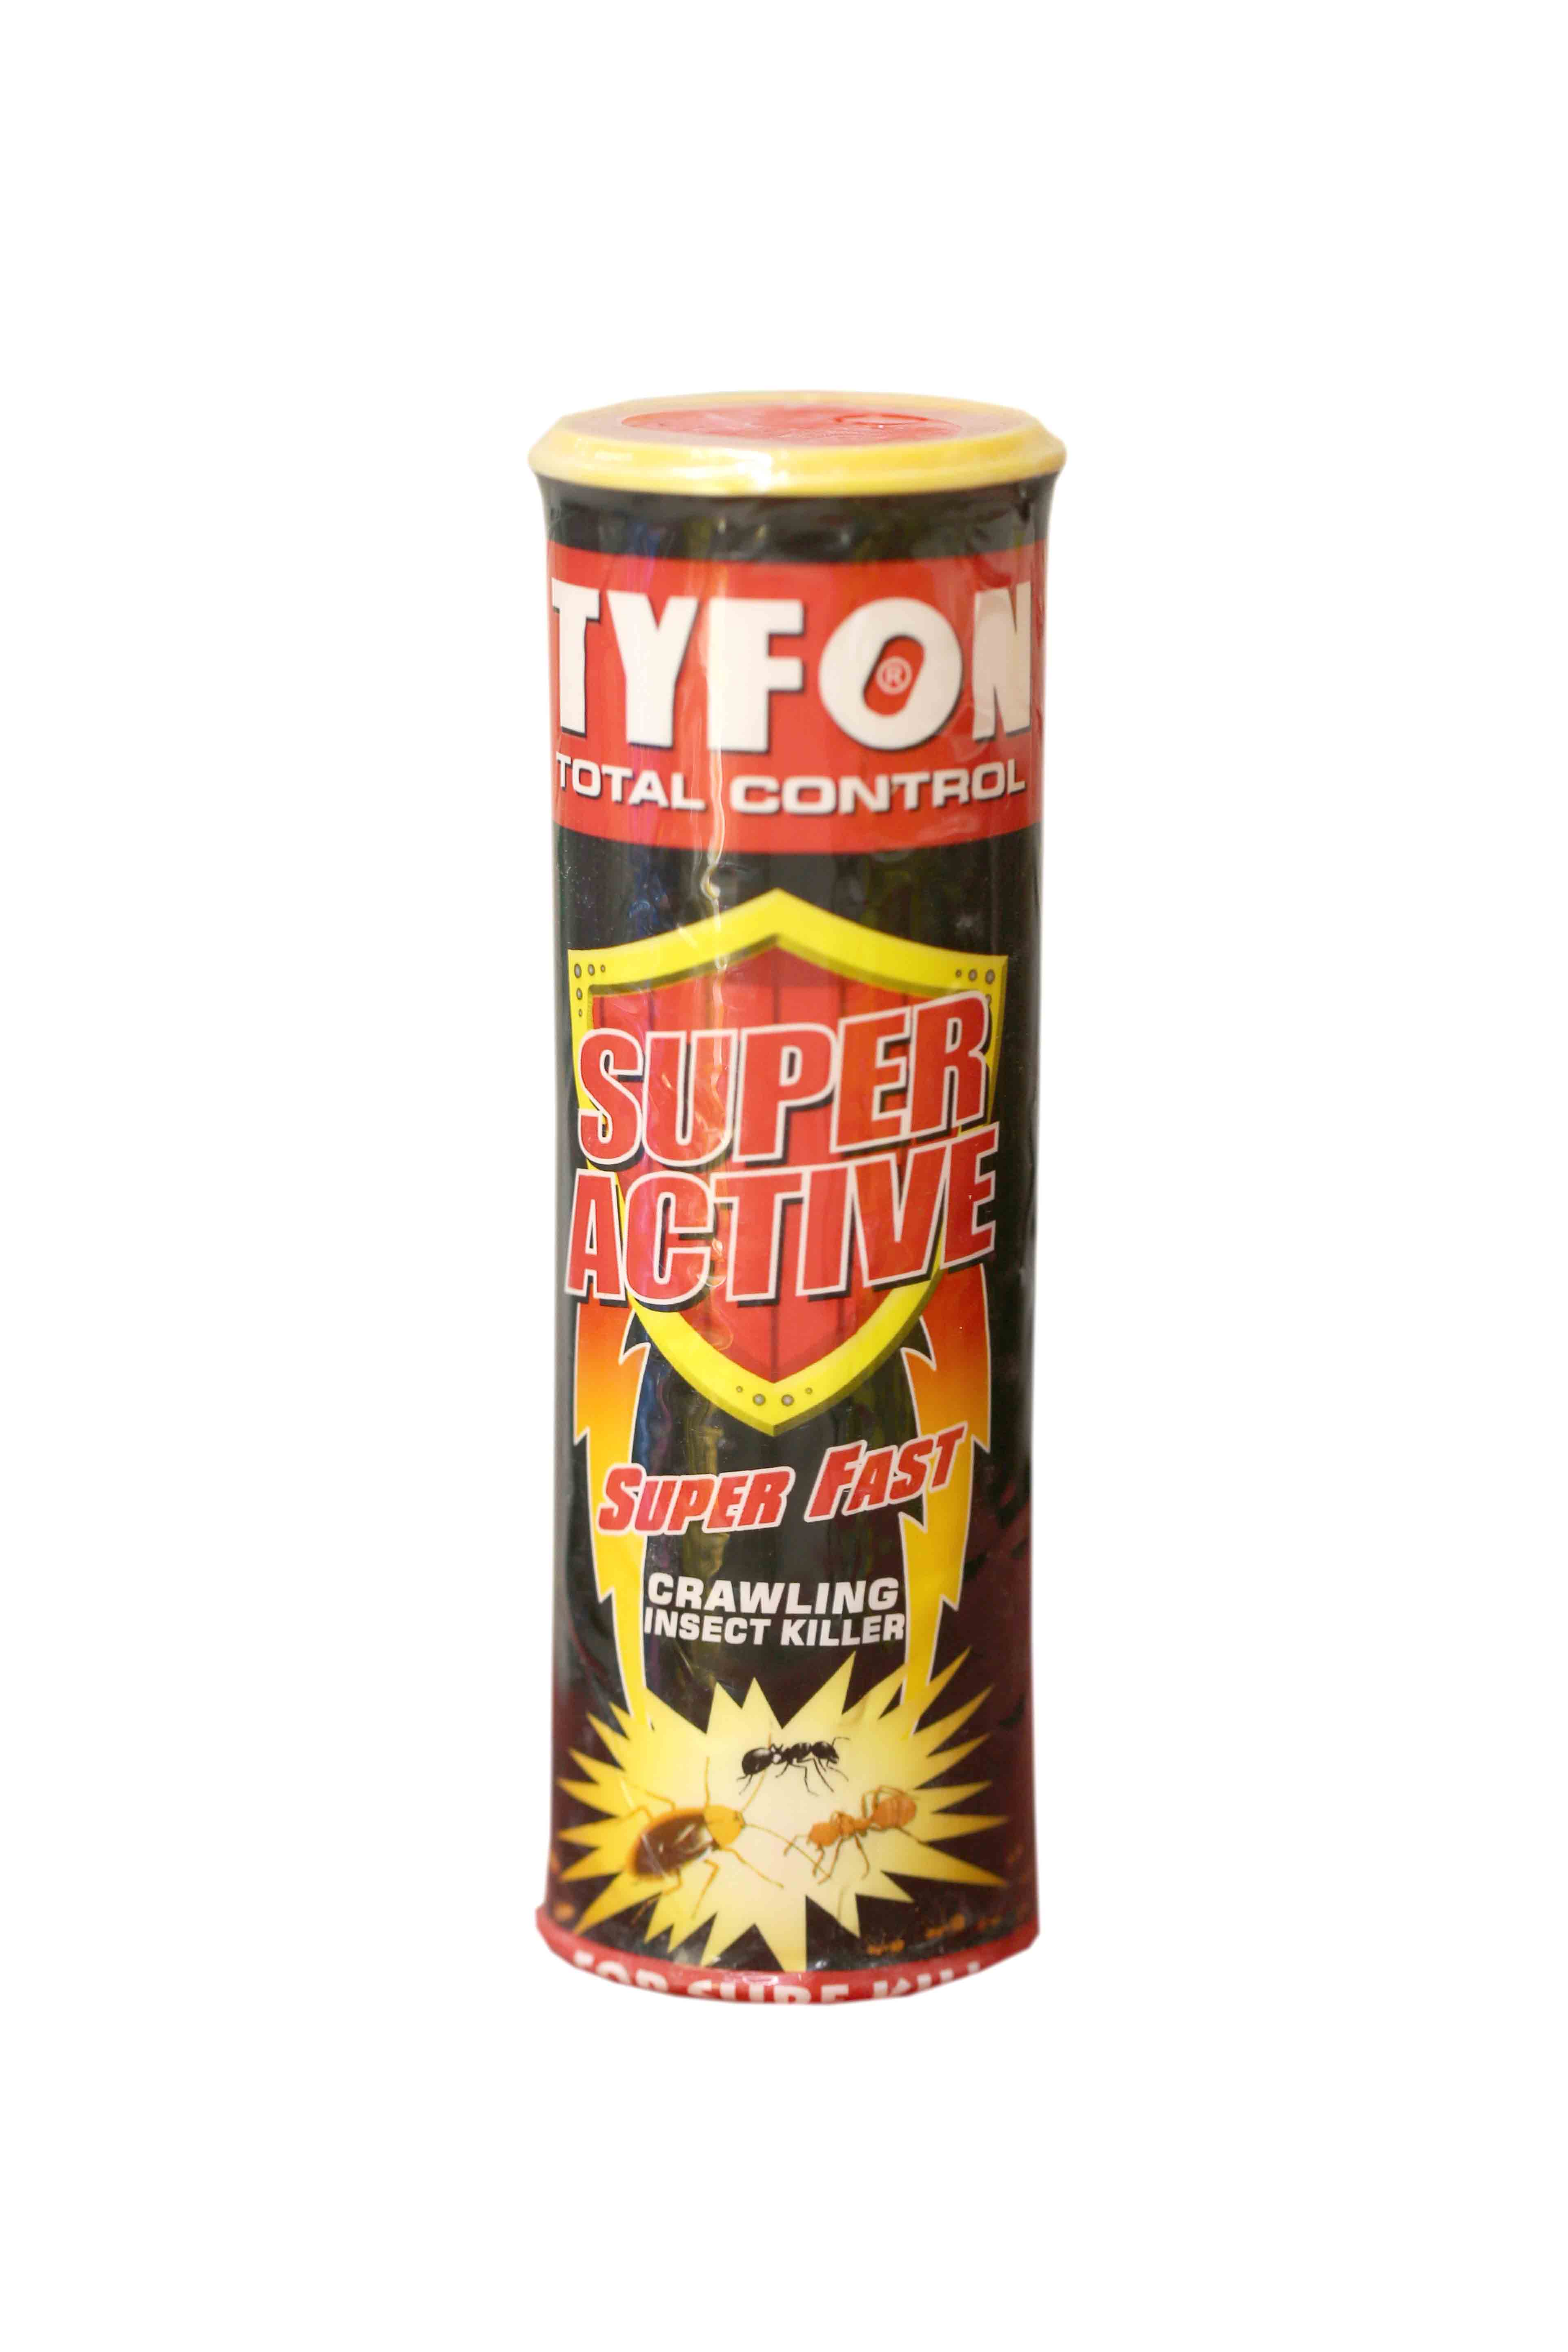 Tyfon Roach Control Cockroach Killer 400ml